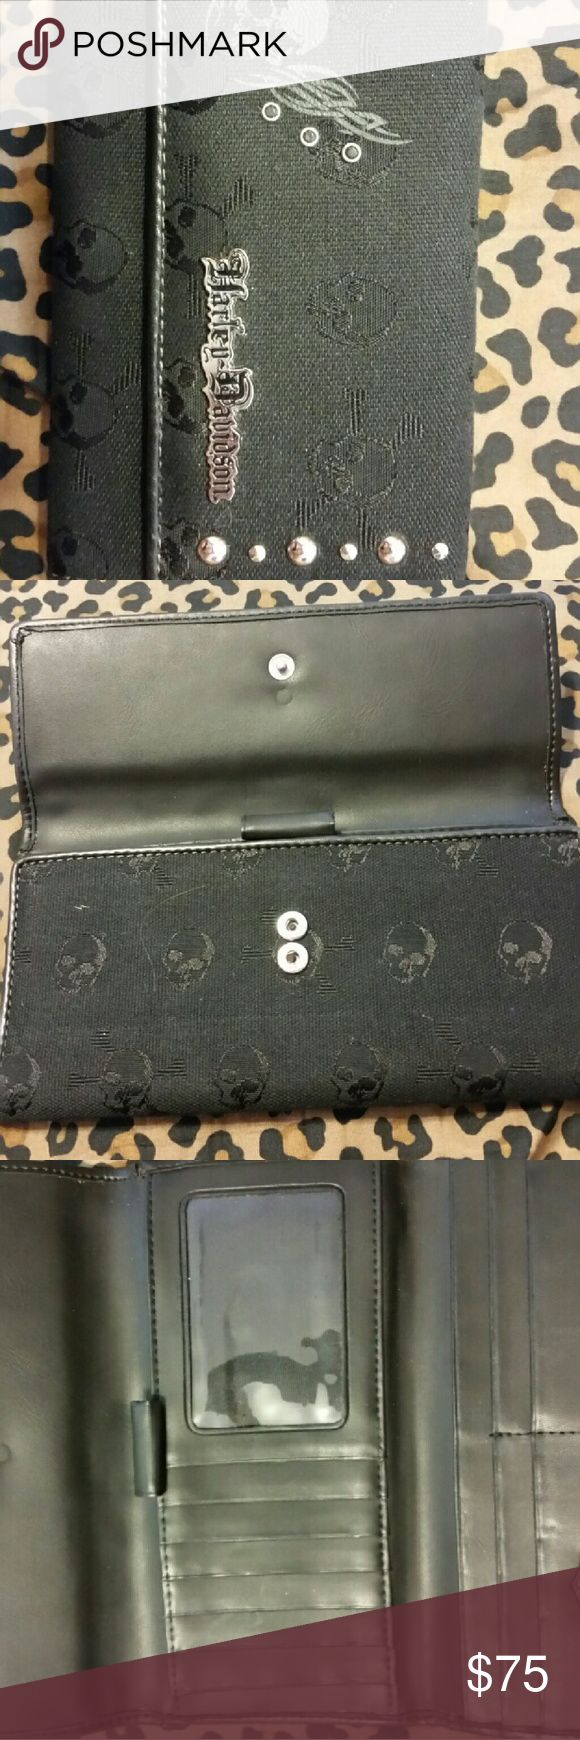 AUTHENTIC HARLEY DAVIDSON STUDDED WALLET!!!! Purchased at the Harley Davidson of Huntington Beach, CA! NEVER USED!!!! GENUINE LEATHER inside of black Trifold snap closure wallet with skull designs and circled studs on left and right of front of wallet. Skull print throughout. Harley-Davidson Bags Wallets